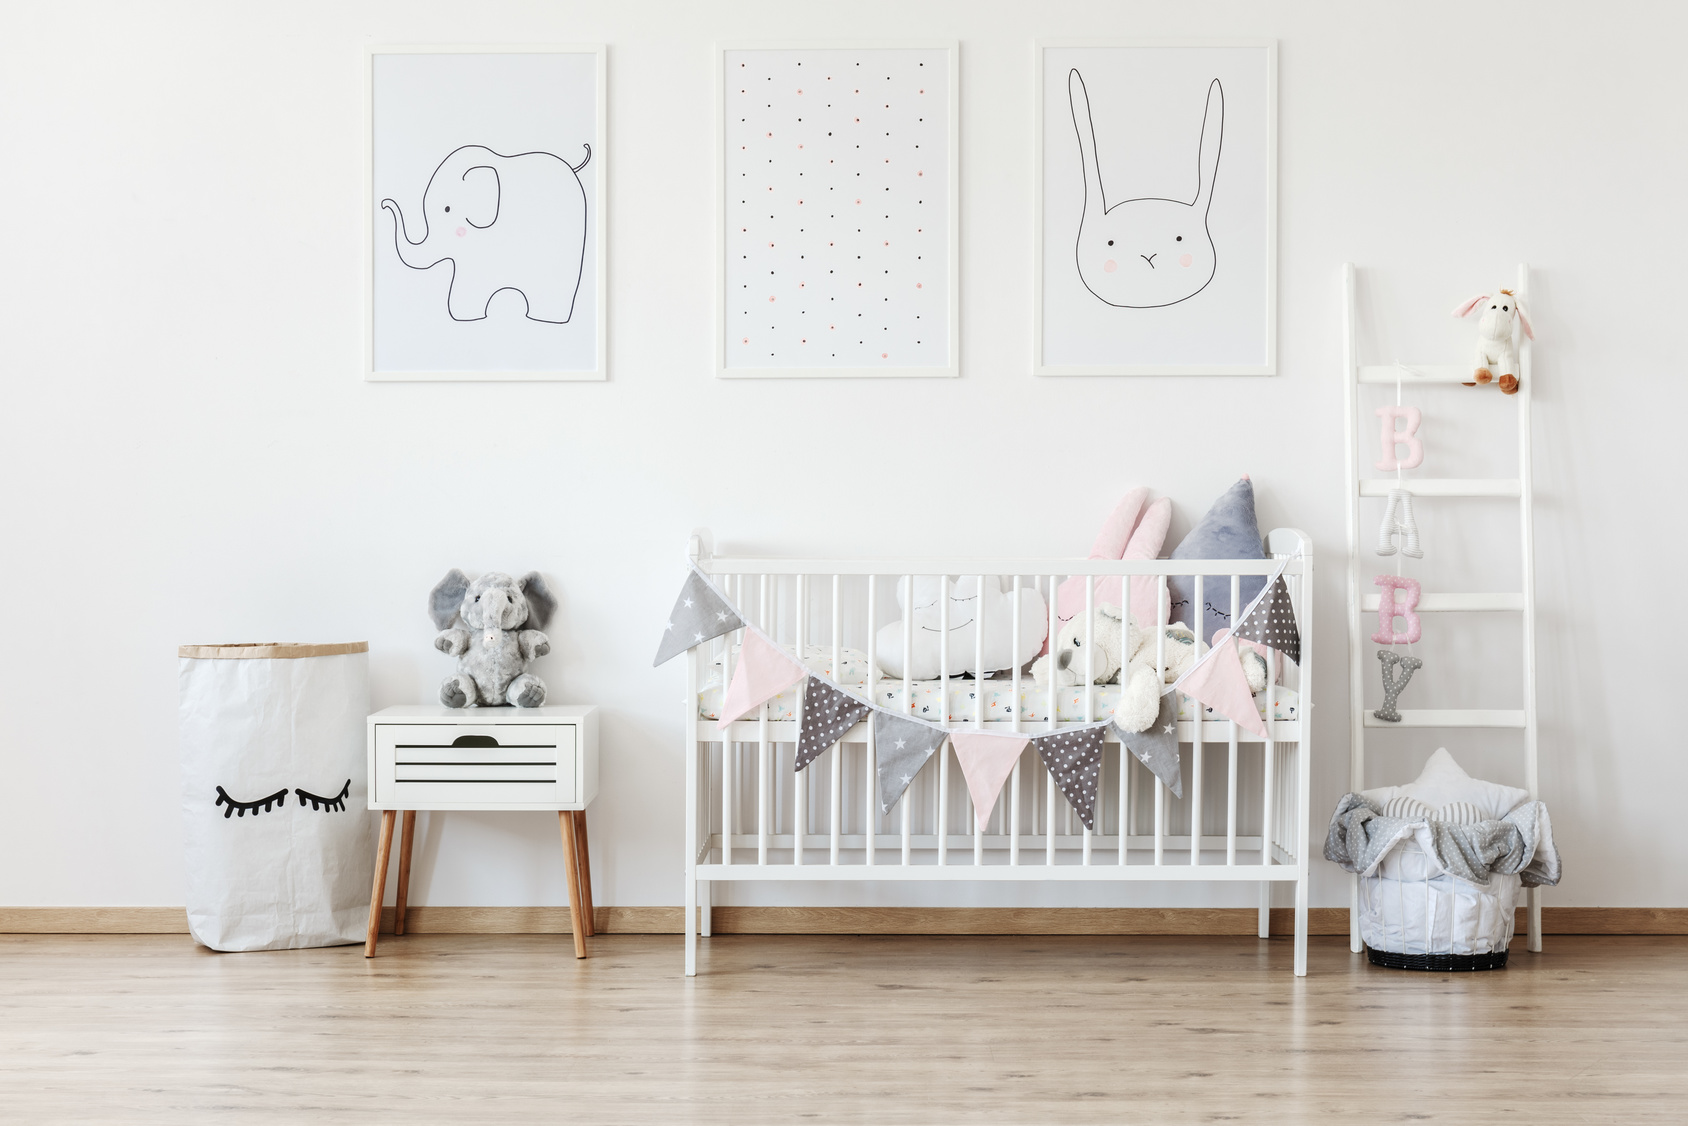 Babyzimmer Gestalten Babyzimmer Gestalten Tipps And Ideen Mytoys Blog